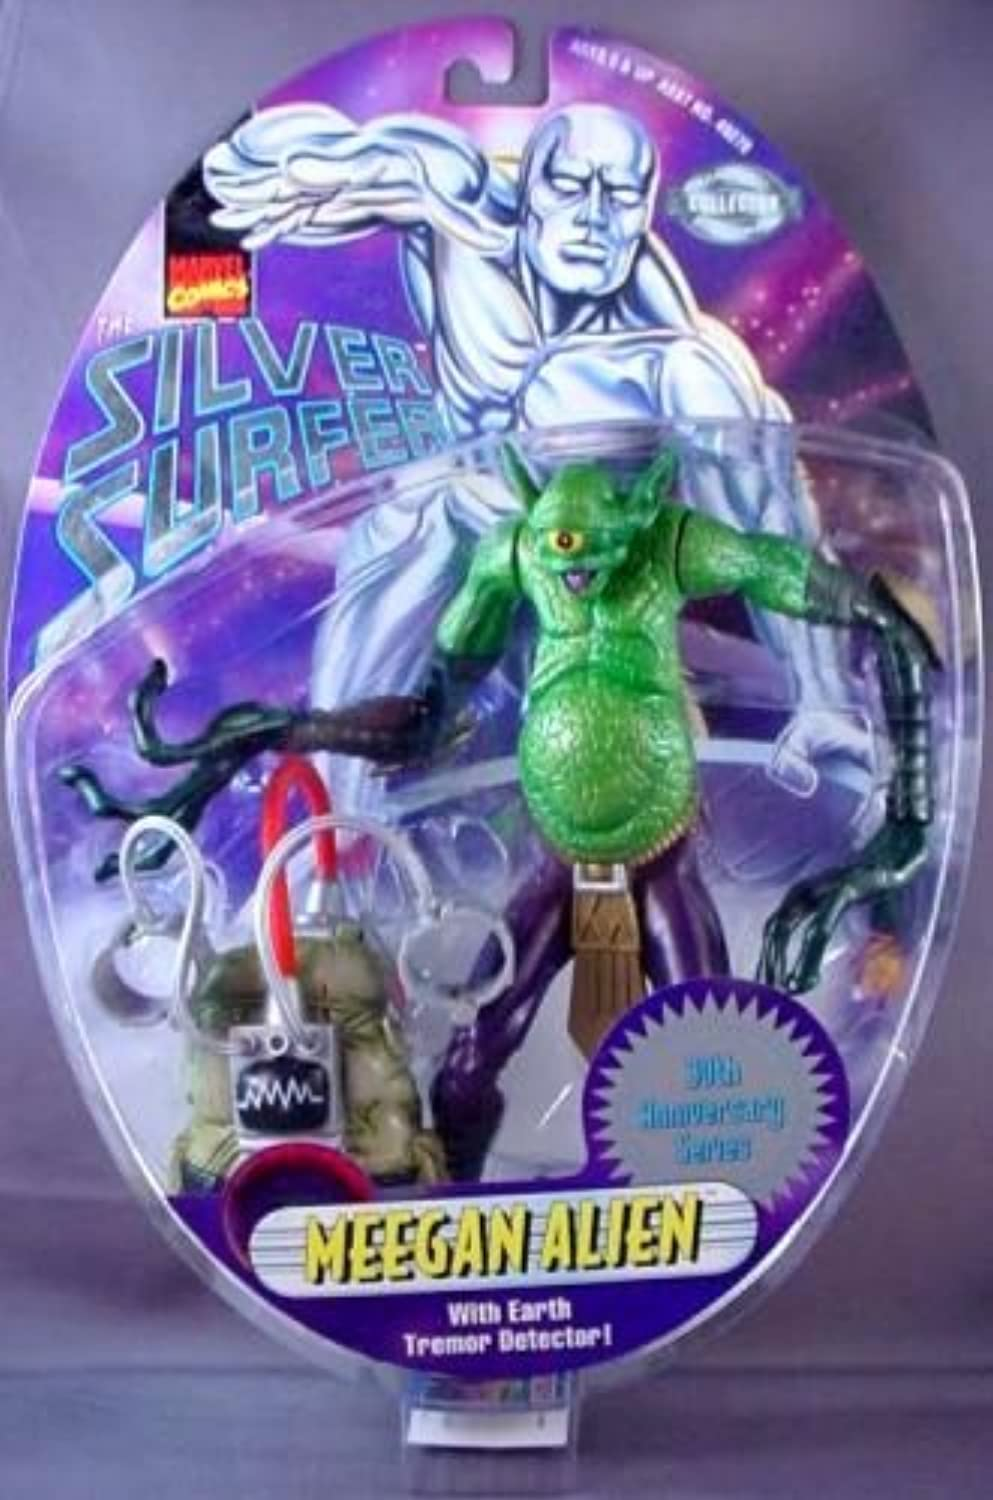 Silver Surfer Meegan Alien 6 inch Action Figure with Earth Tremor Detector by Silver Surfer